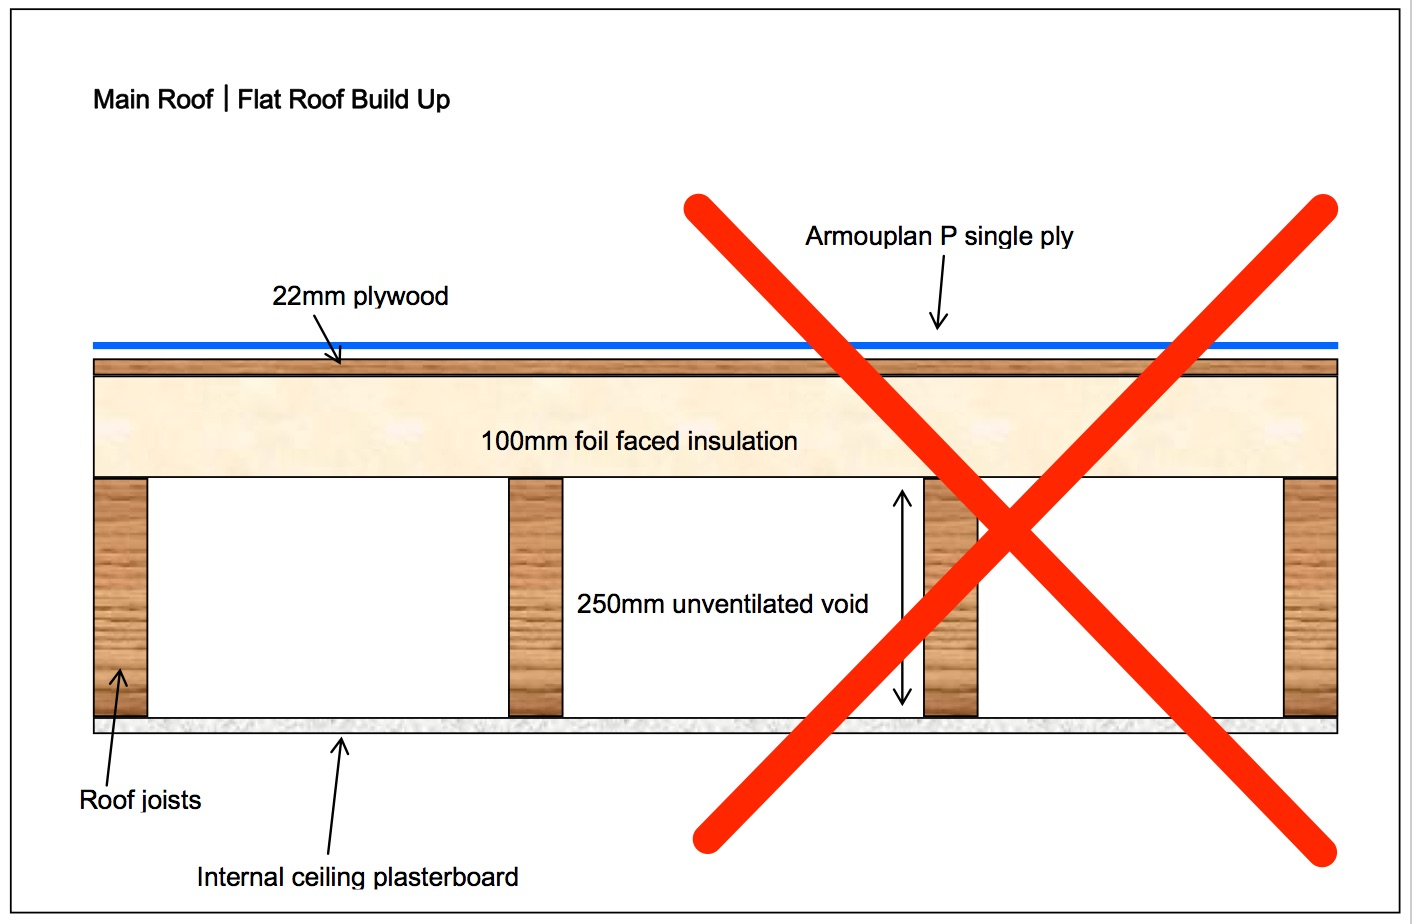 SIG Design & Technology Flat Roof Problems - Don't Split ...